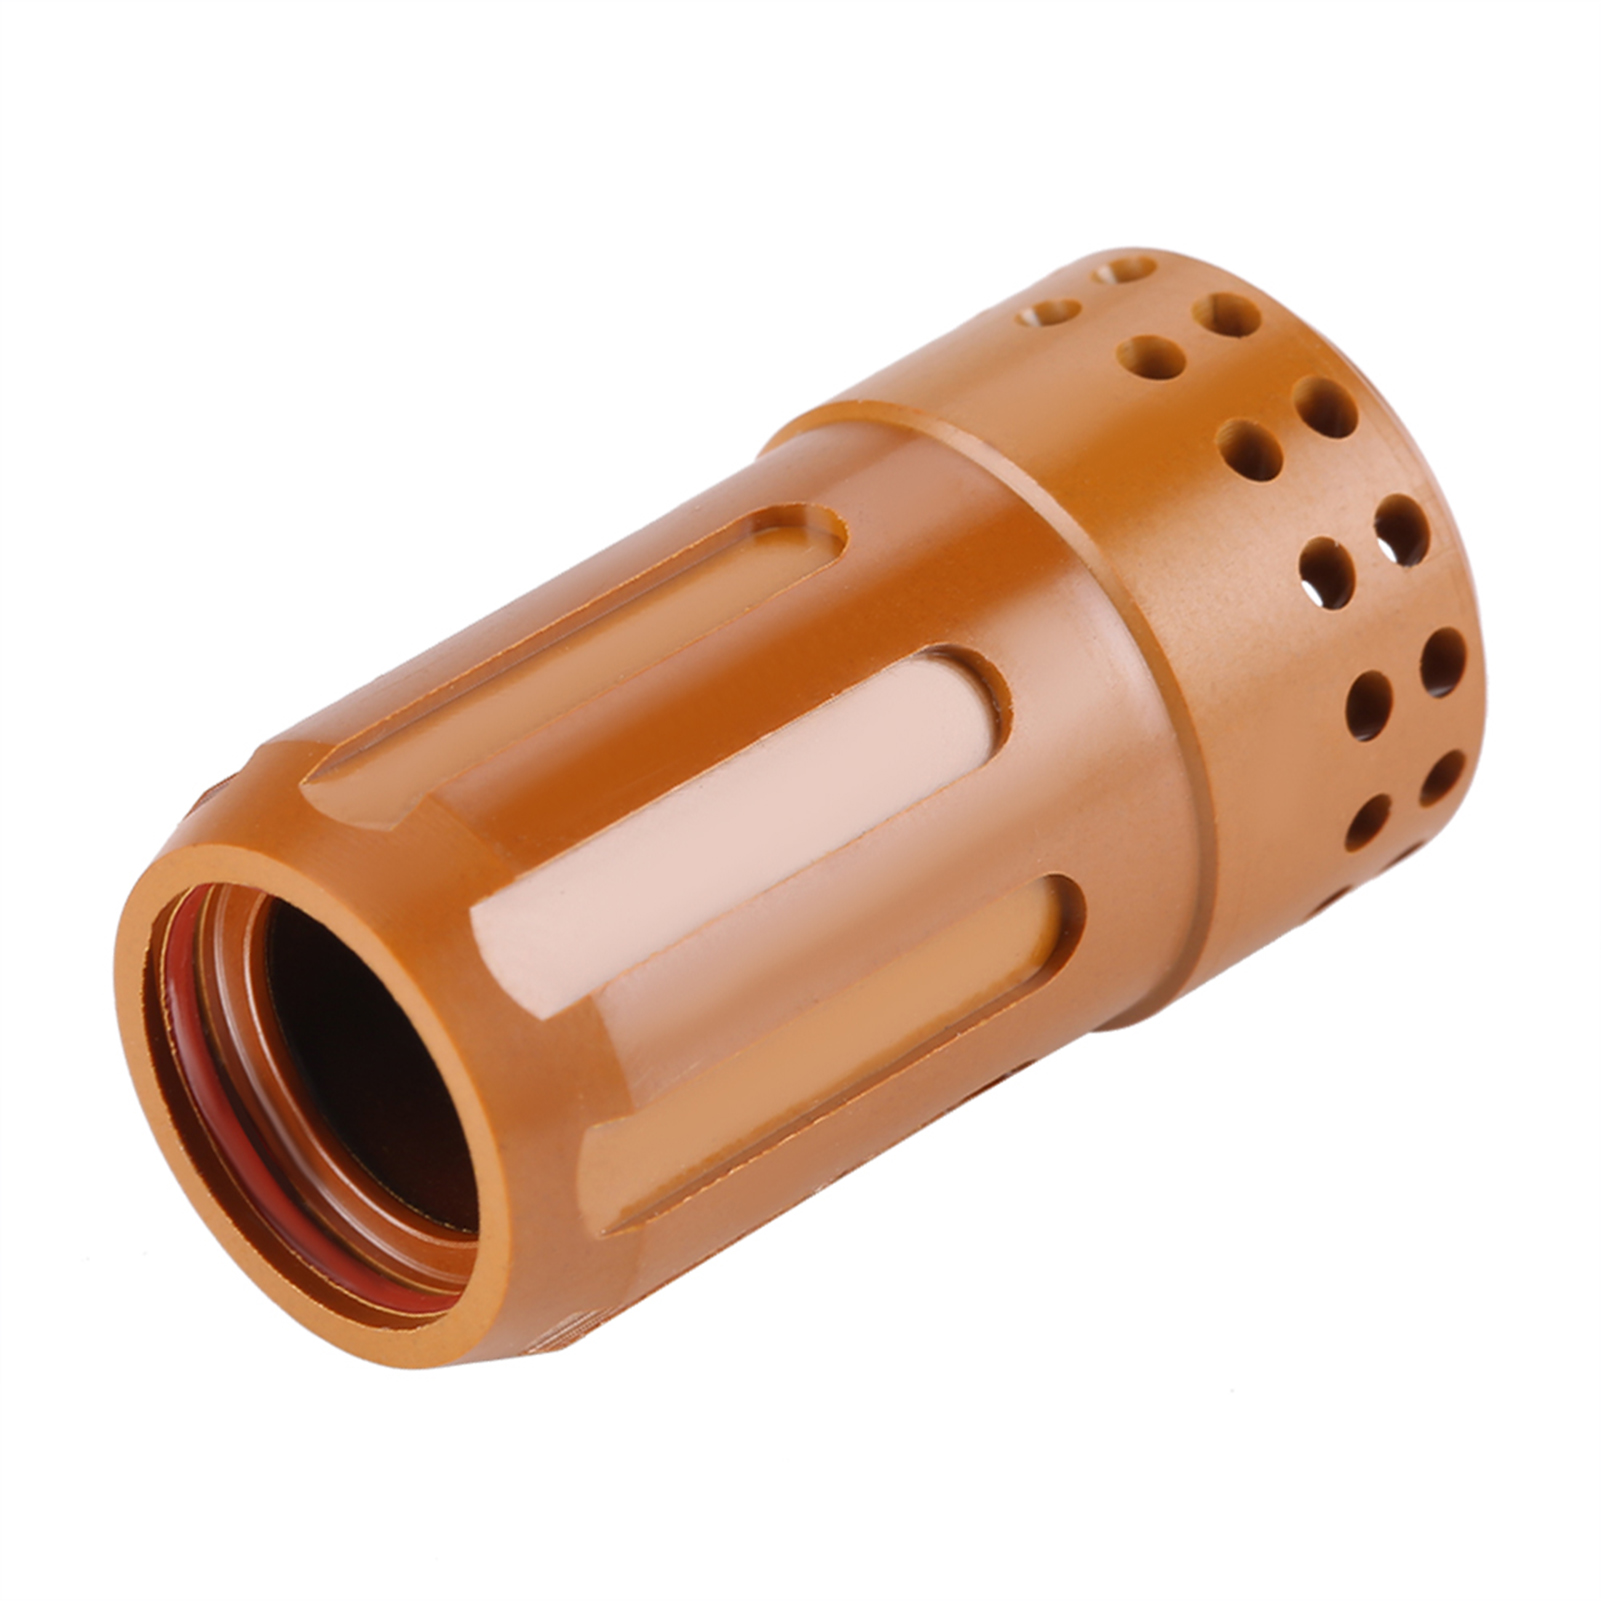 1pc-MAX45-105-Plasma-Cutting-Machine-Cutter-Swirl-Ring-Consumables-Parts-220857